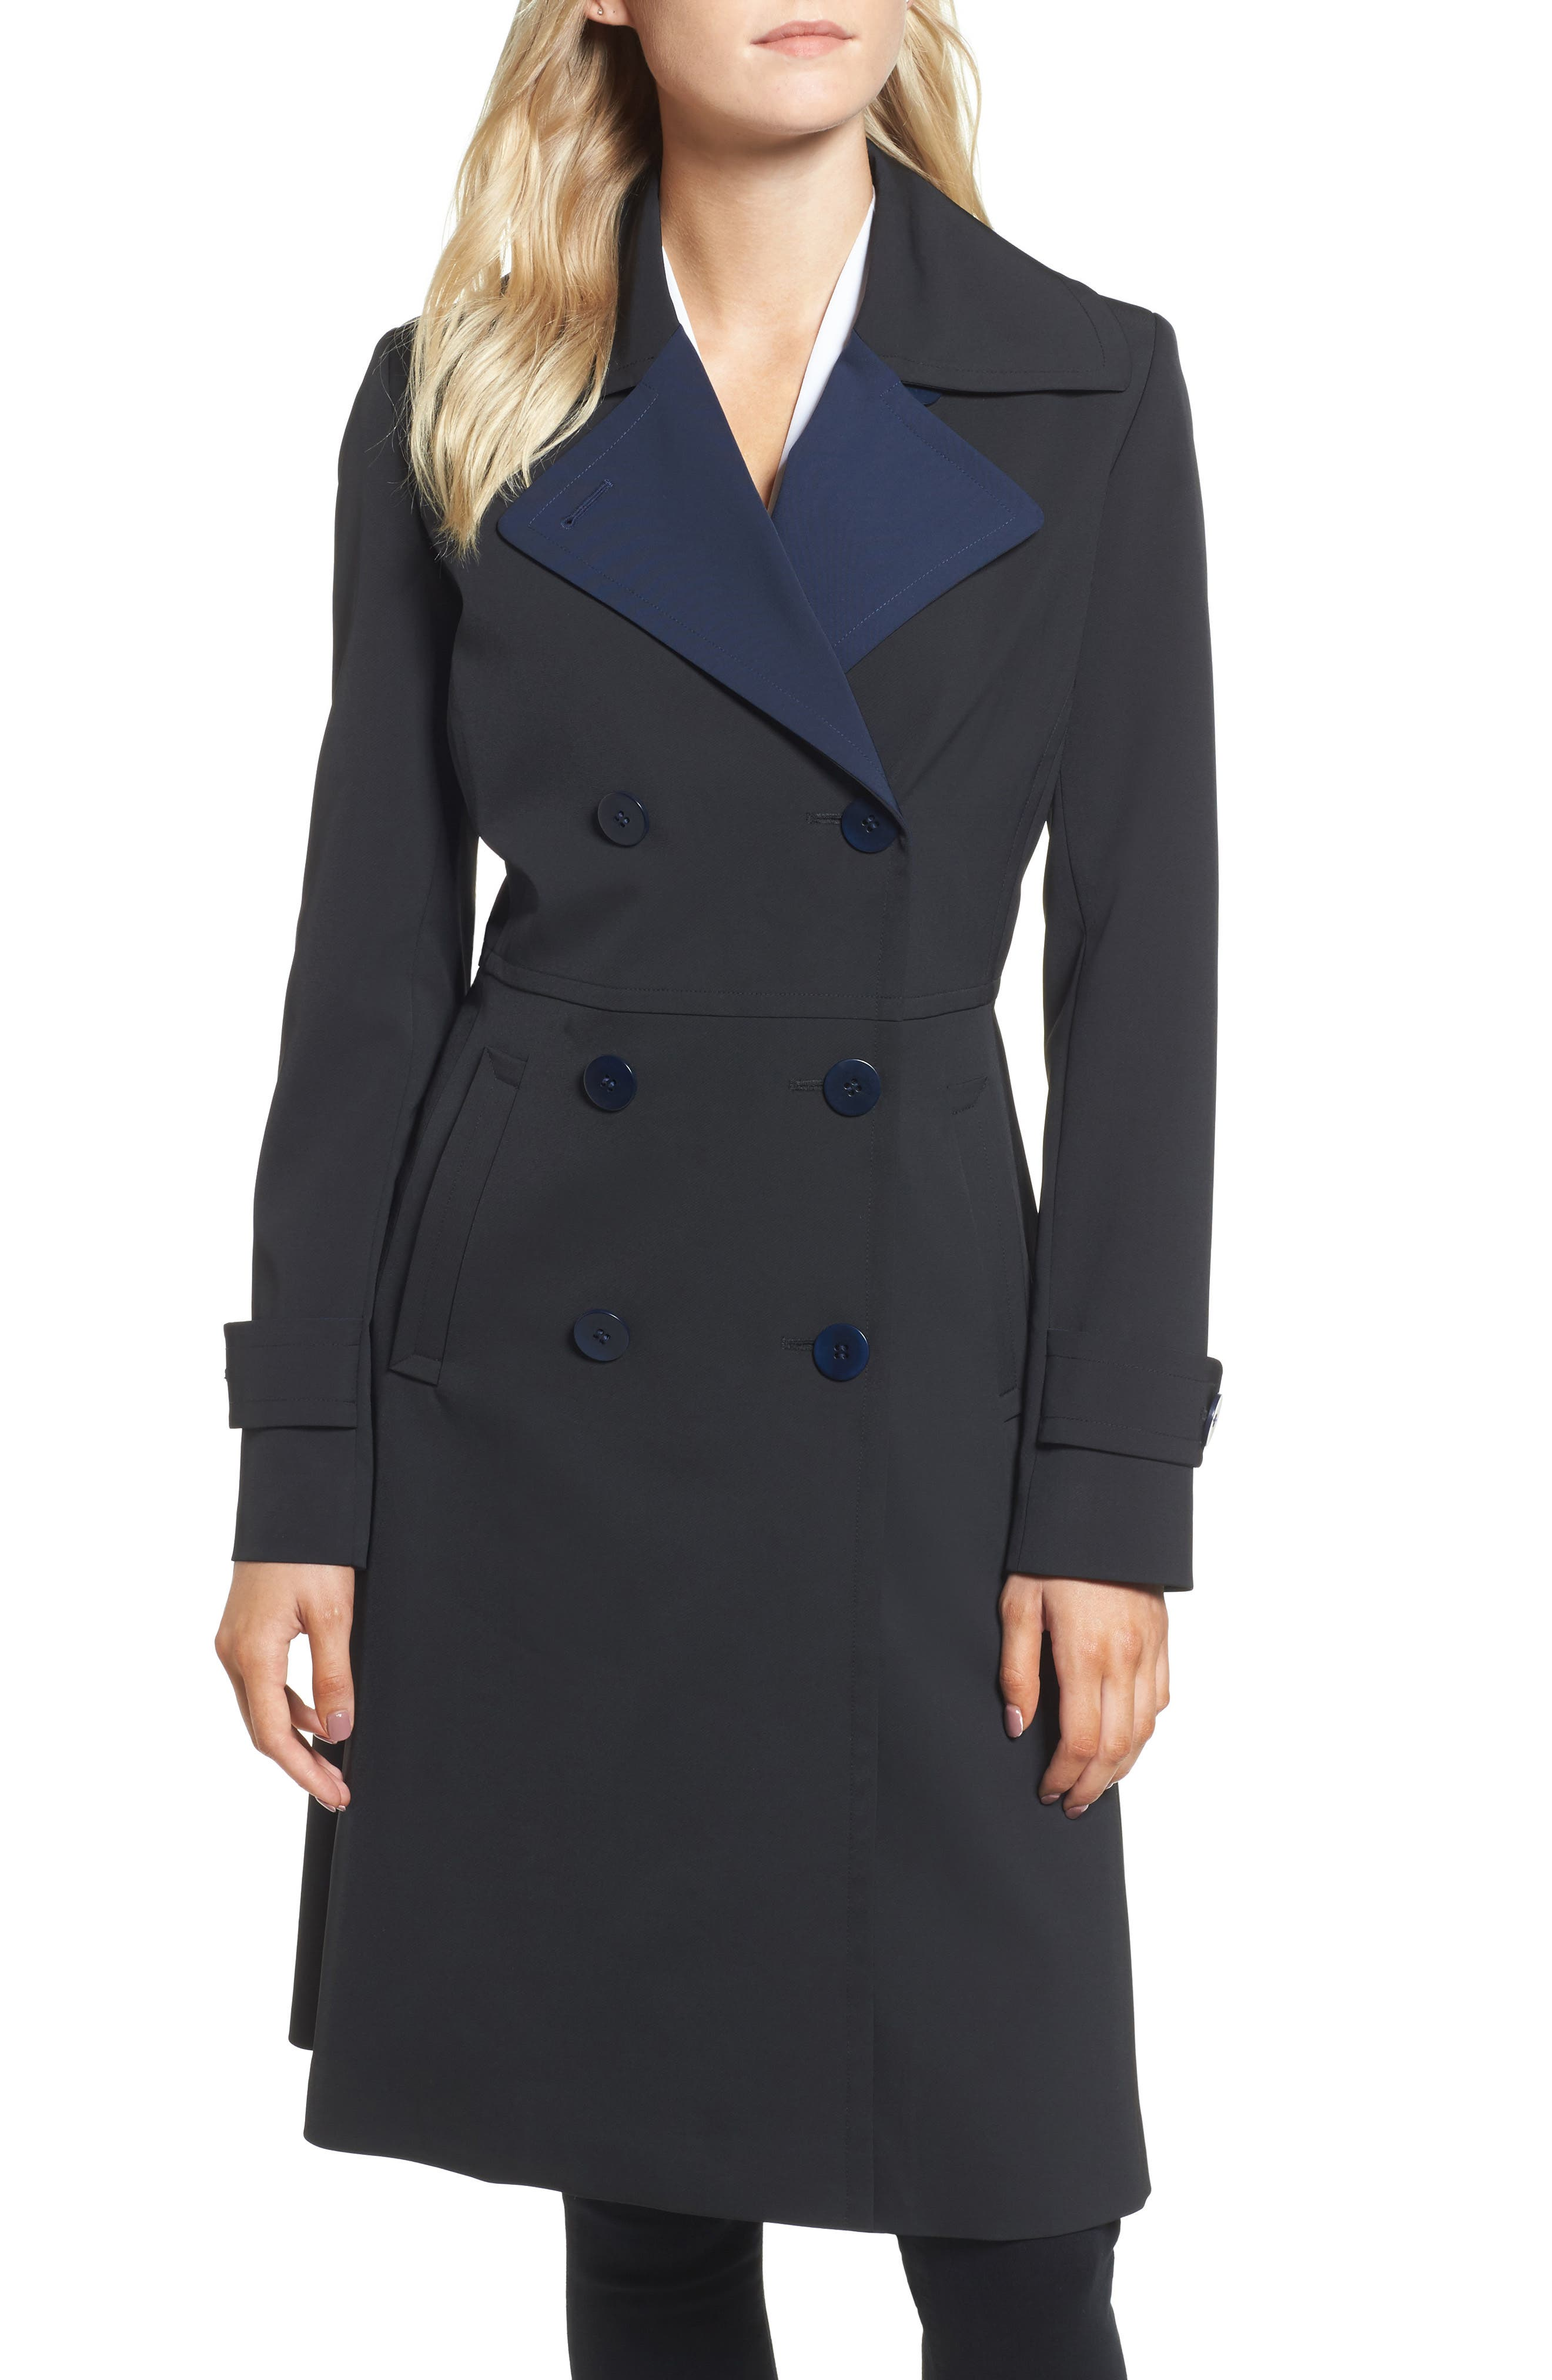 Main Image - Trina Turk Isabella Two-Tone Double Breasted Trench Raincoat